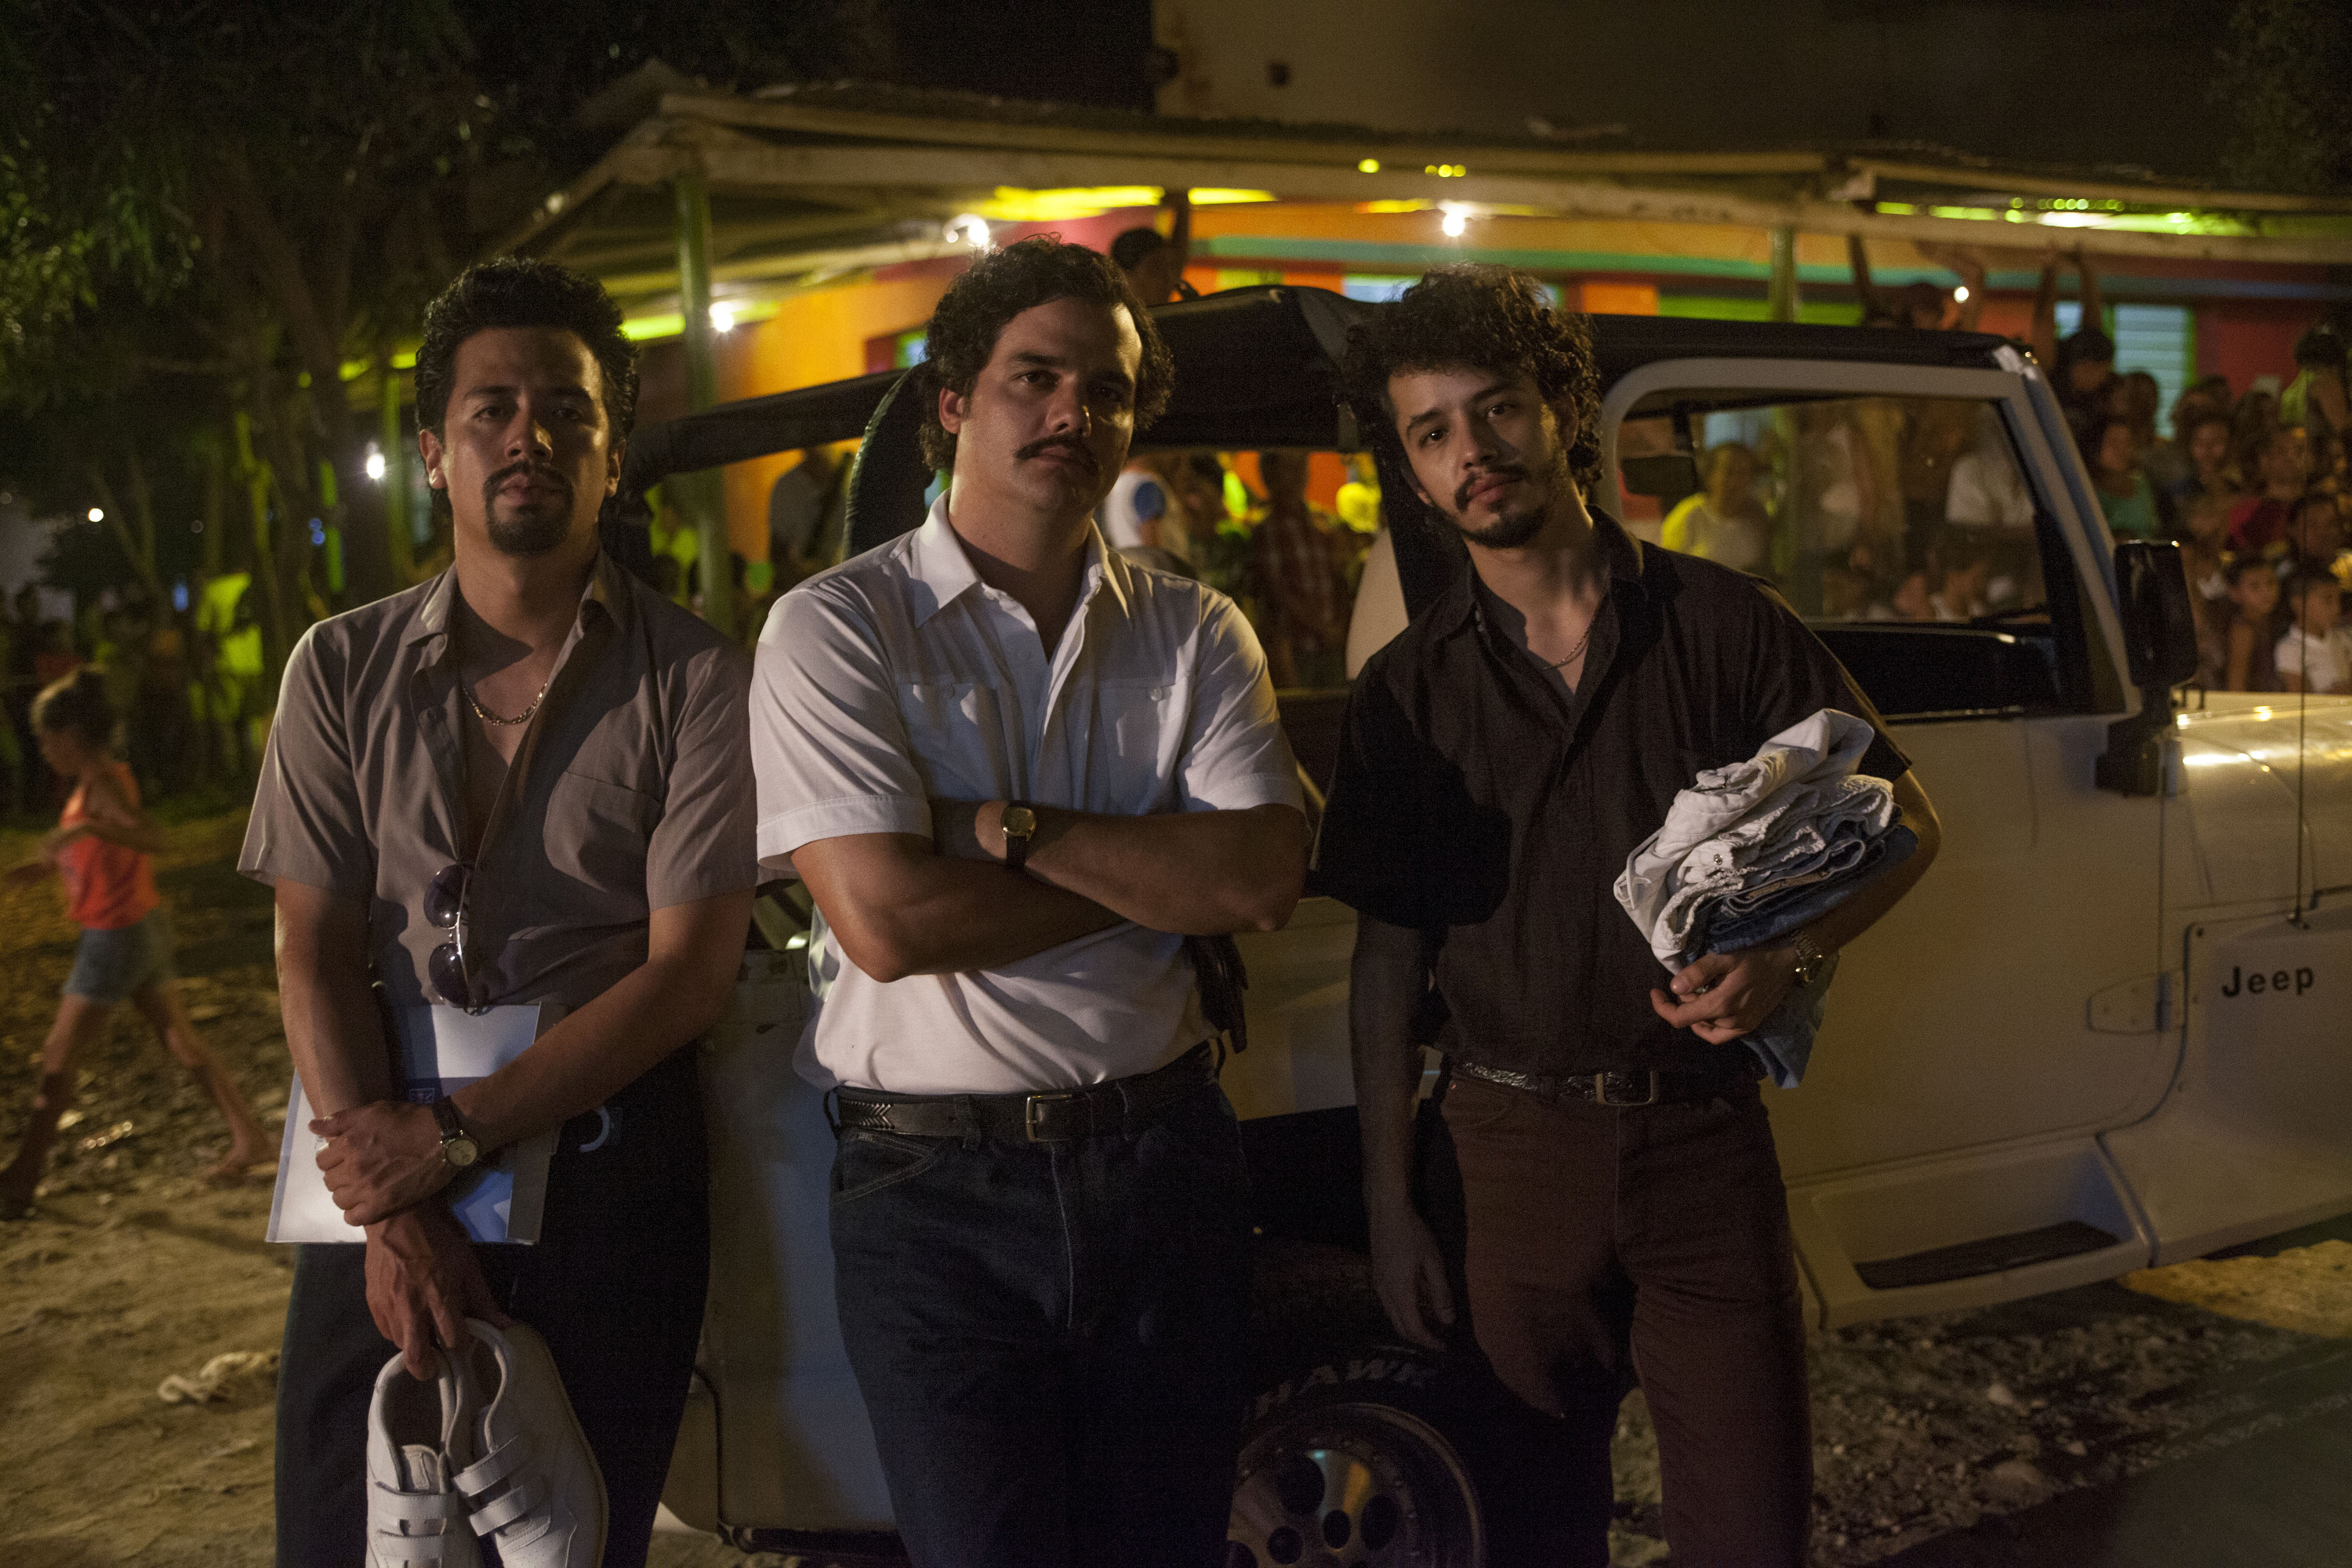 wagner-moura-narcos-2